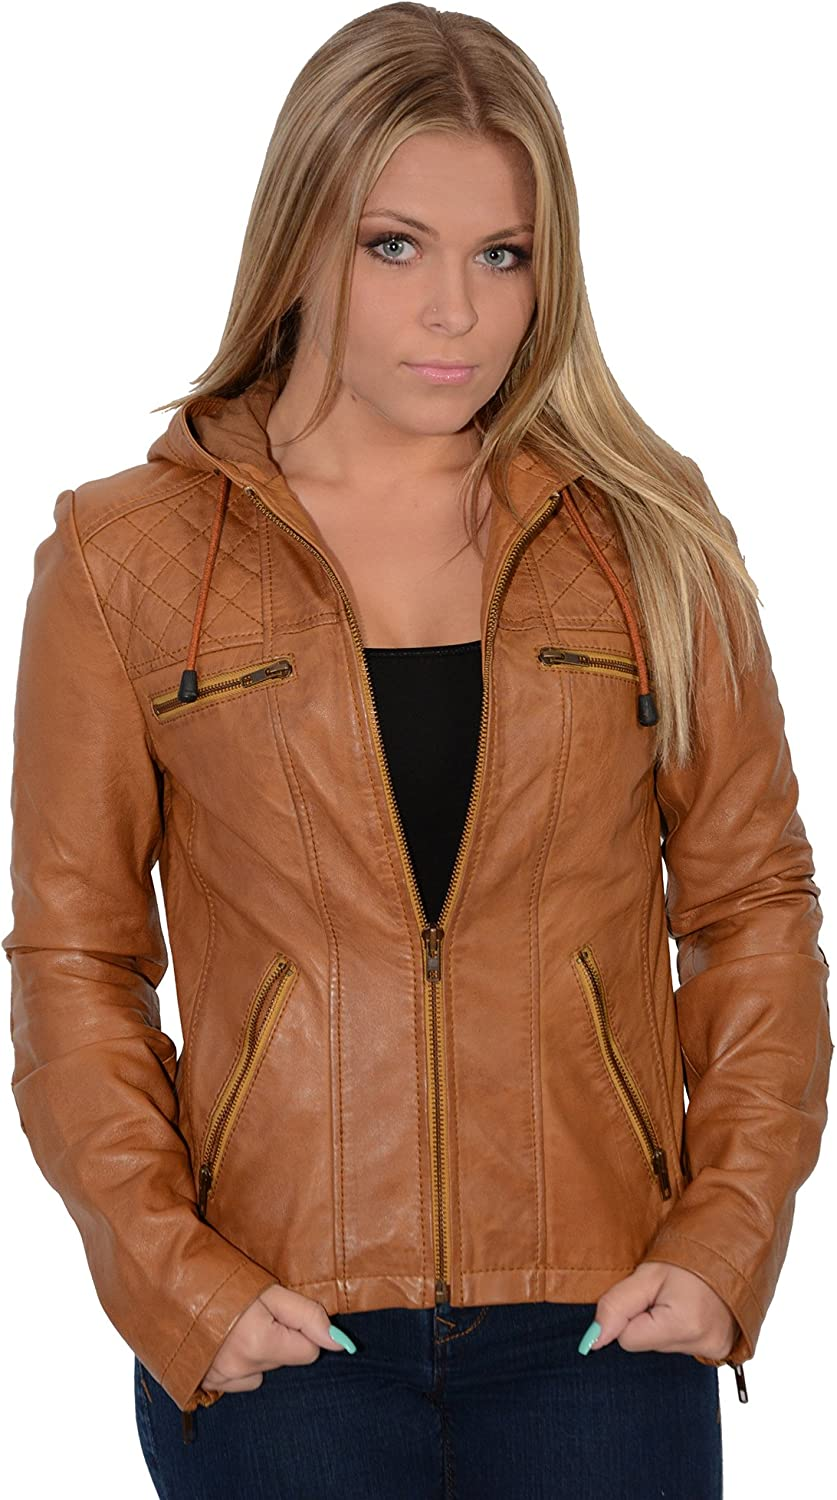 Milwaukee Leather Women's Hooded Scuba Jacket with Draw String (Cognac, X Large), 1 Pack